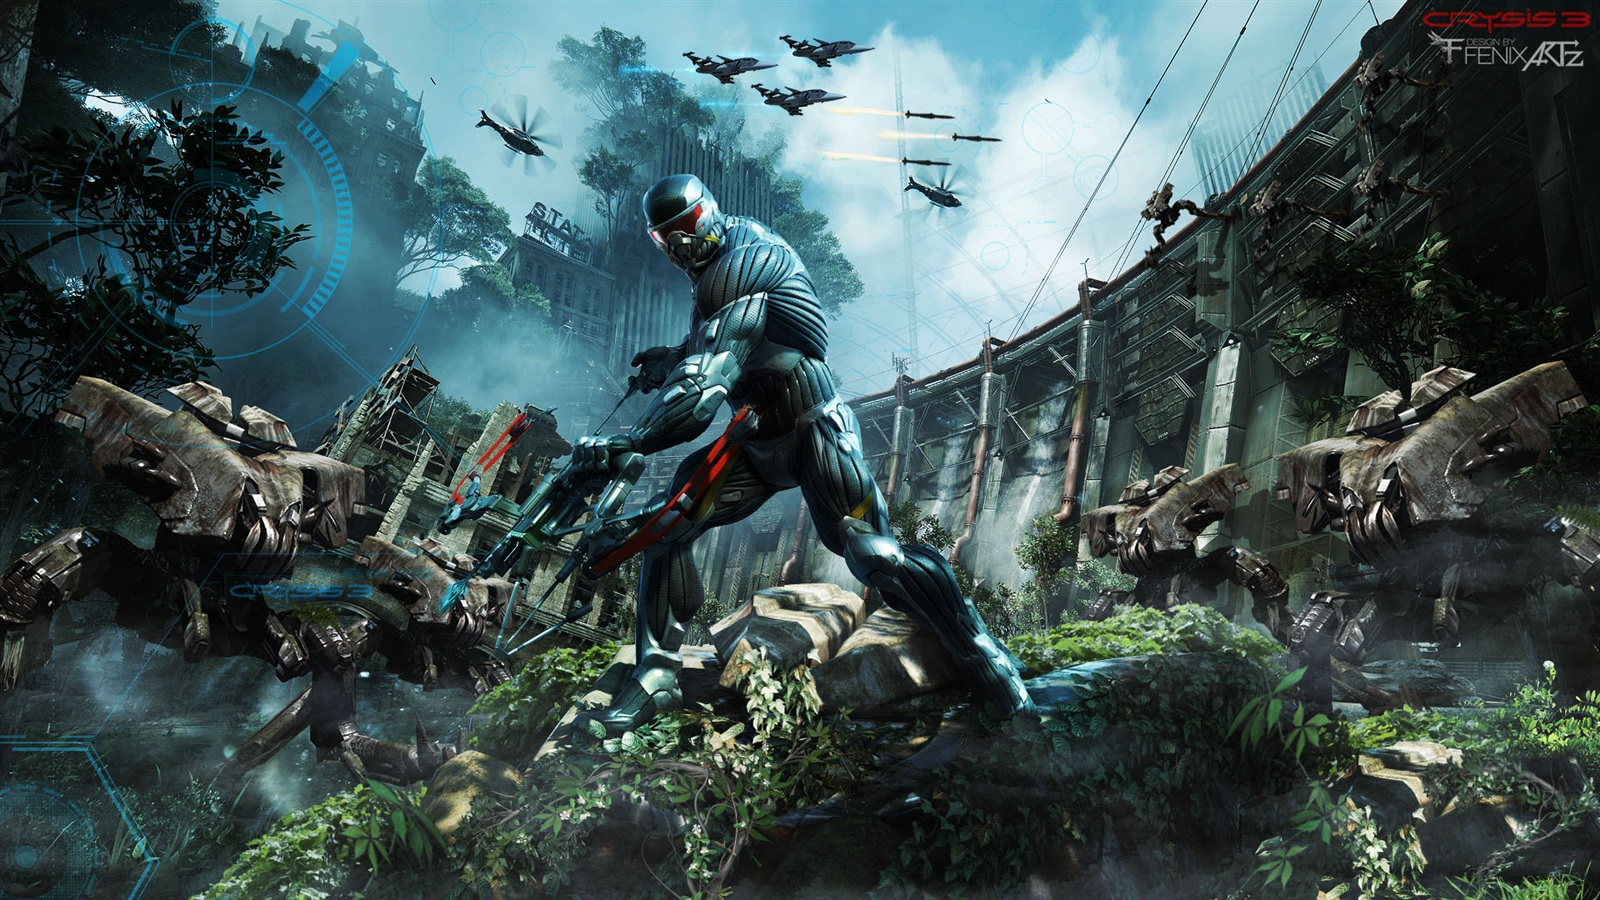 Crysis 3 2013 Video Game 4k Hd Desktop Wallpaper For 4k: Wallpaper Crysis 3 Fighters 1920x1080 Full HD 2K Picture